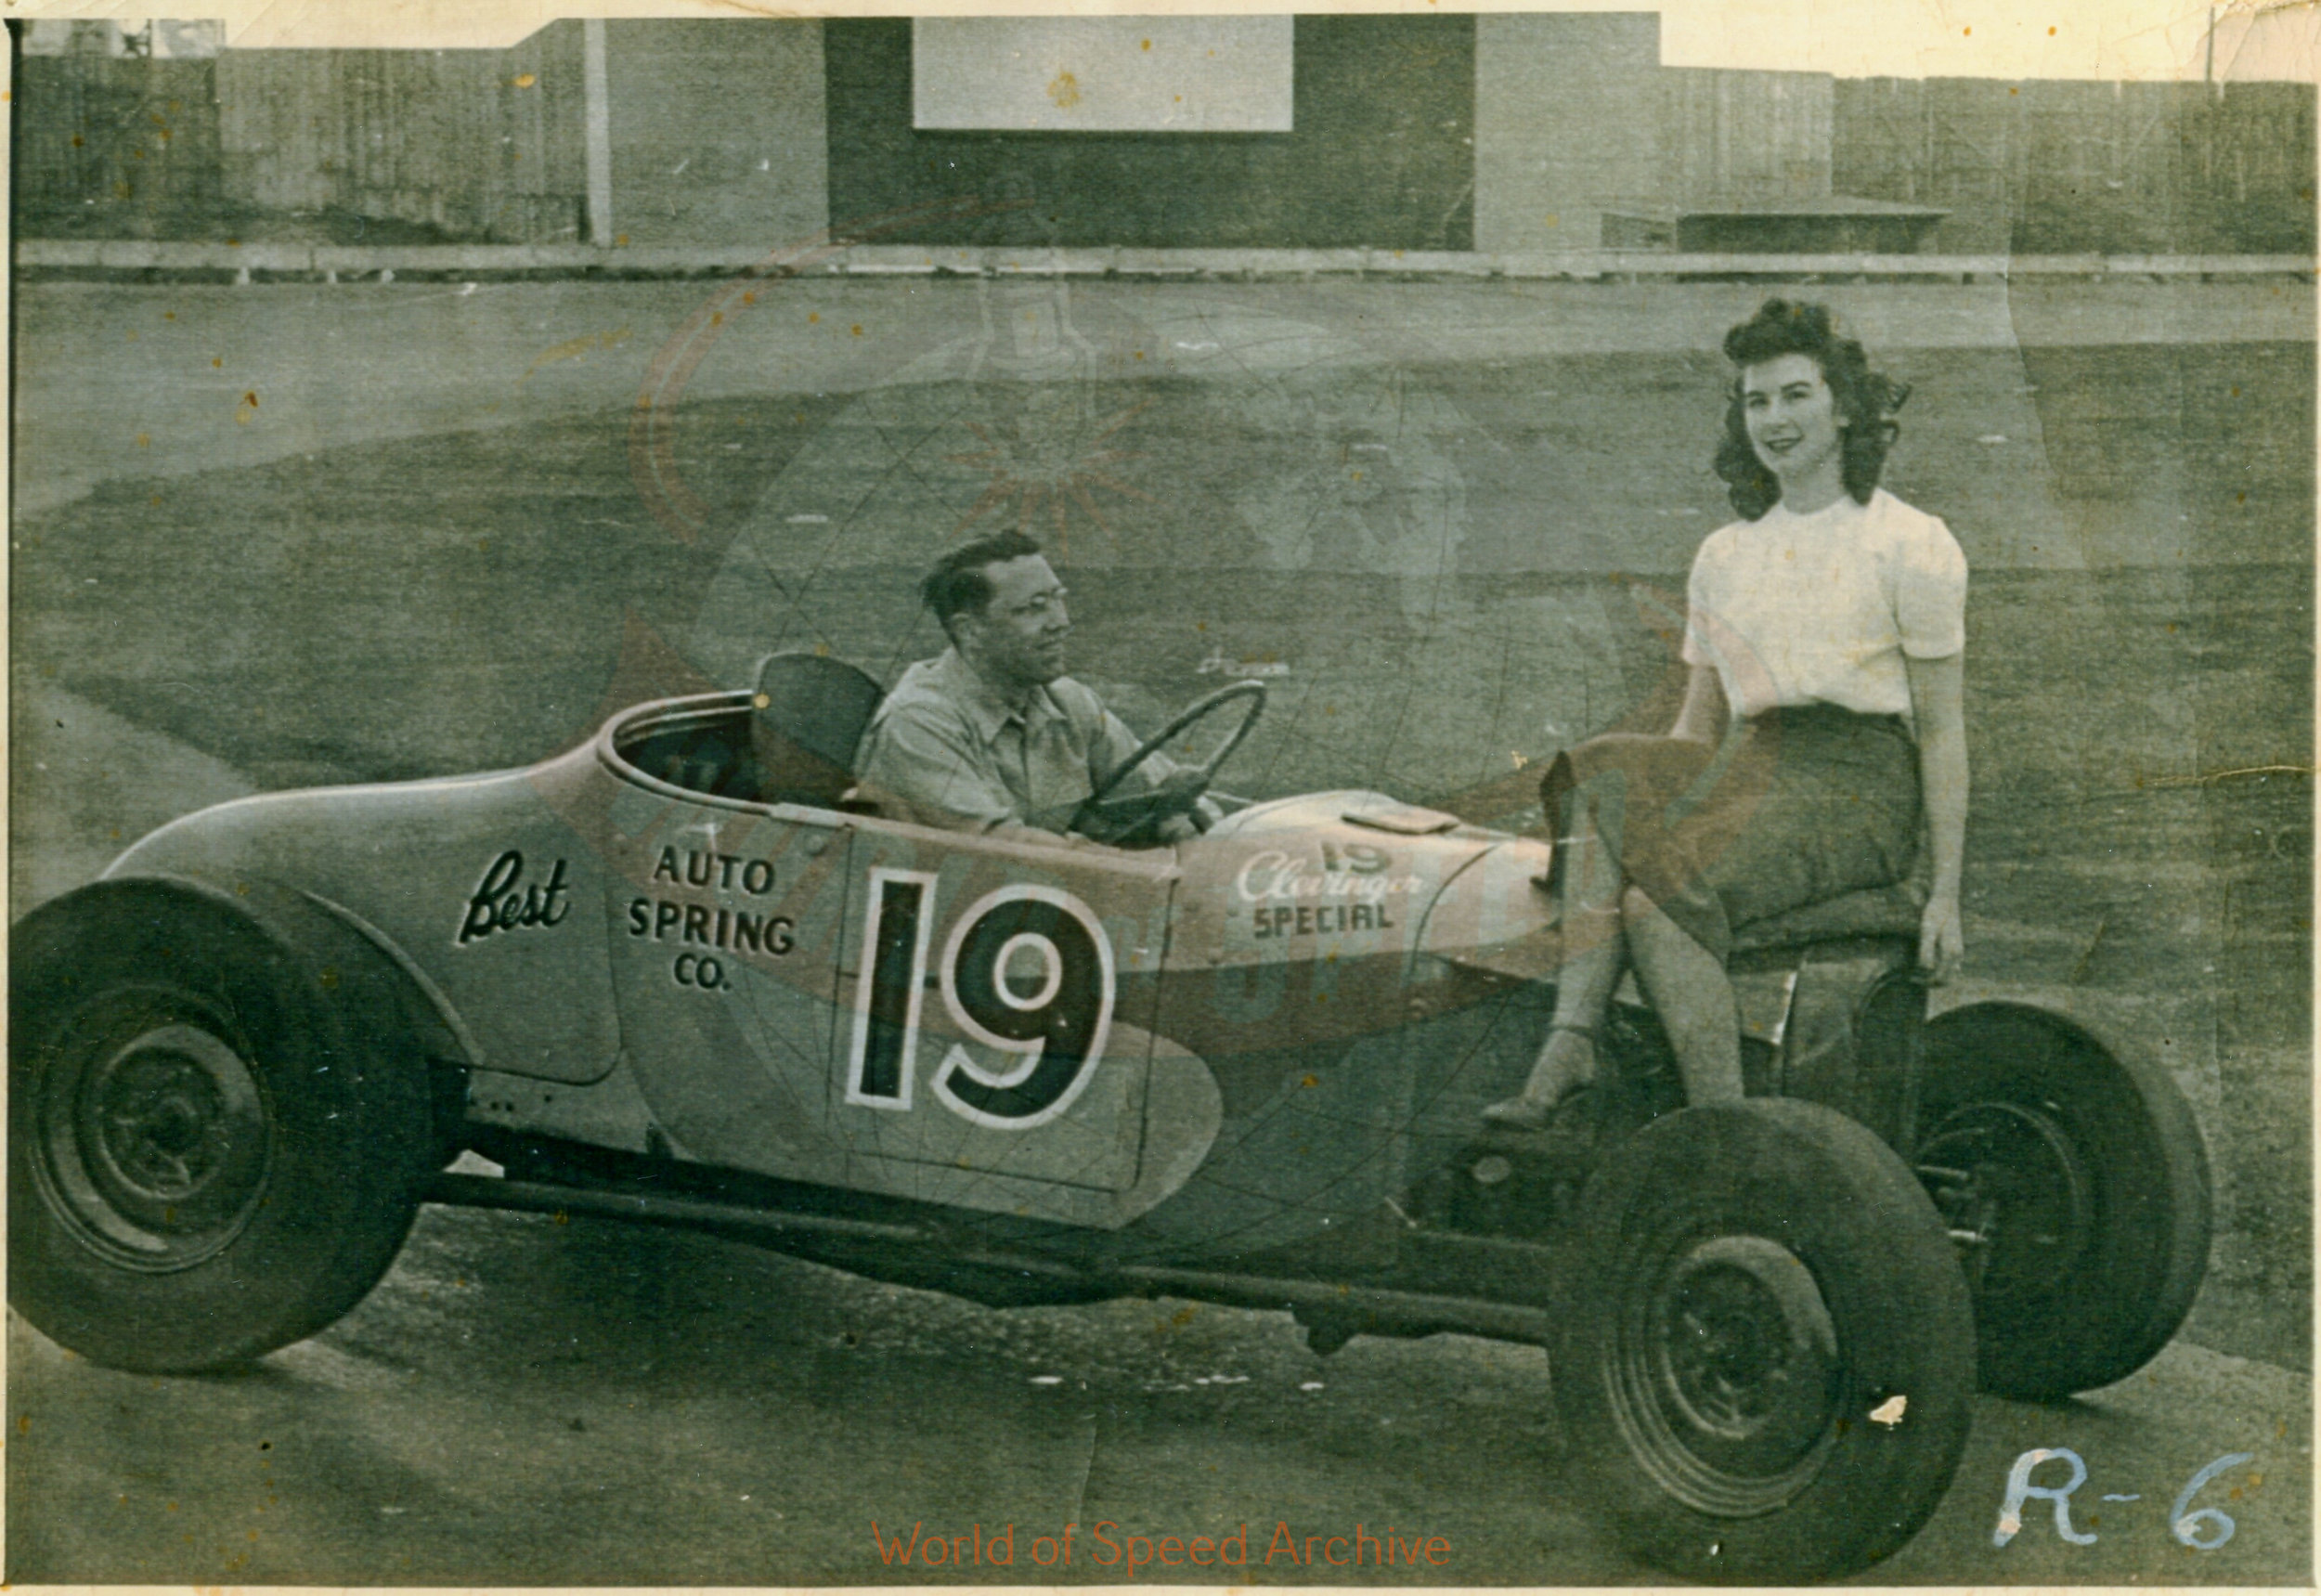 Hildick Photo Collection WOS#5072, BH001  Received submission:  Don Moore in Jack Greiner's '27 that he purchased from Dick Clevenger for $425.; 1948 Portland Speedway; model is Doris Mitchell